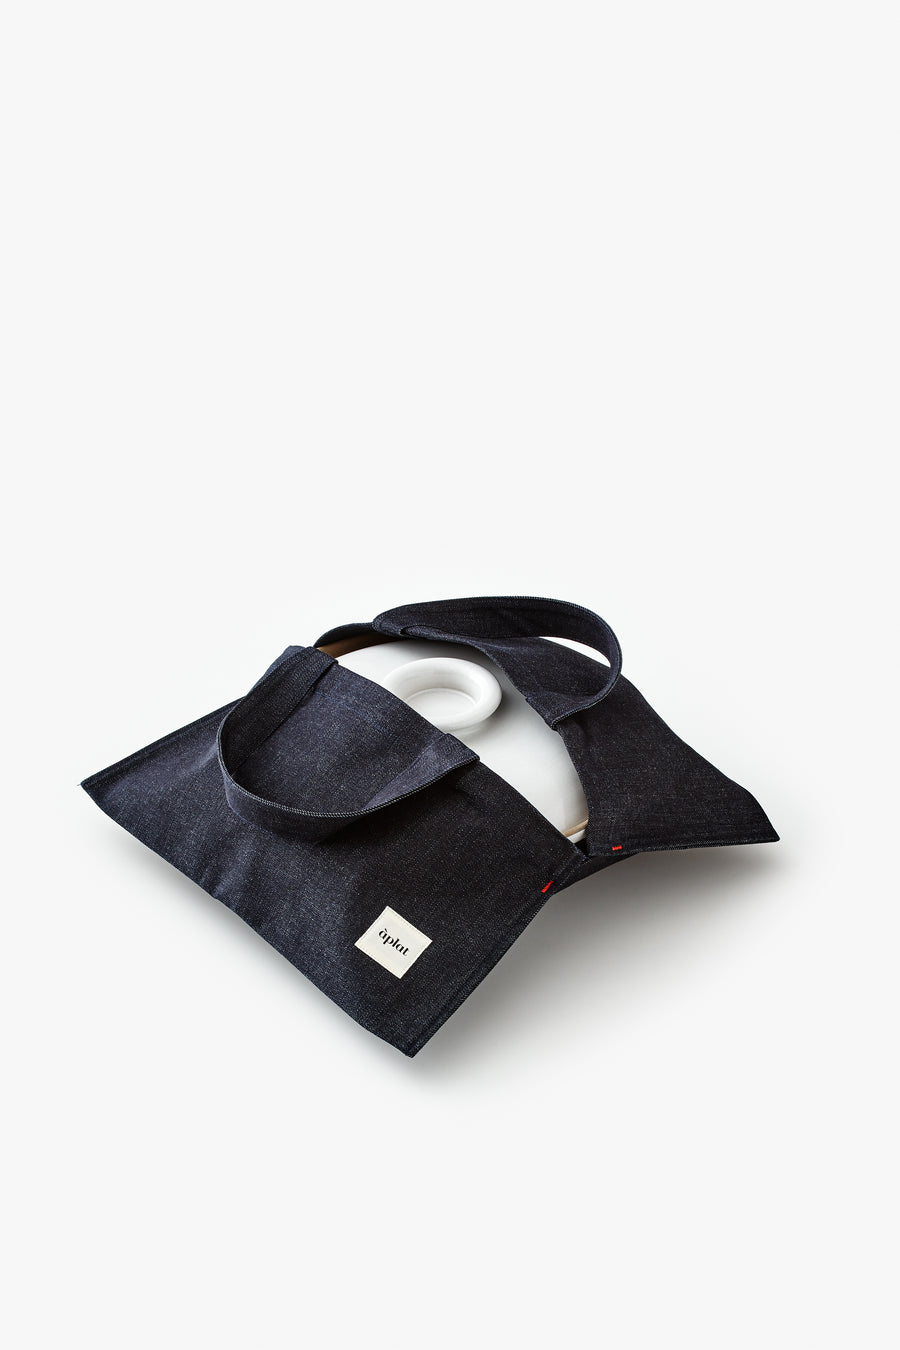 Plat Culinary Dish Tote | Denim Dark - Aplat